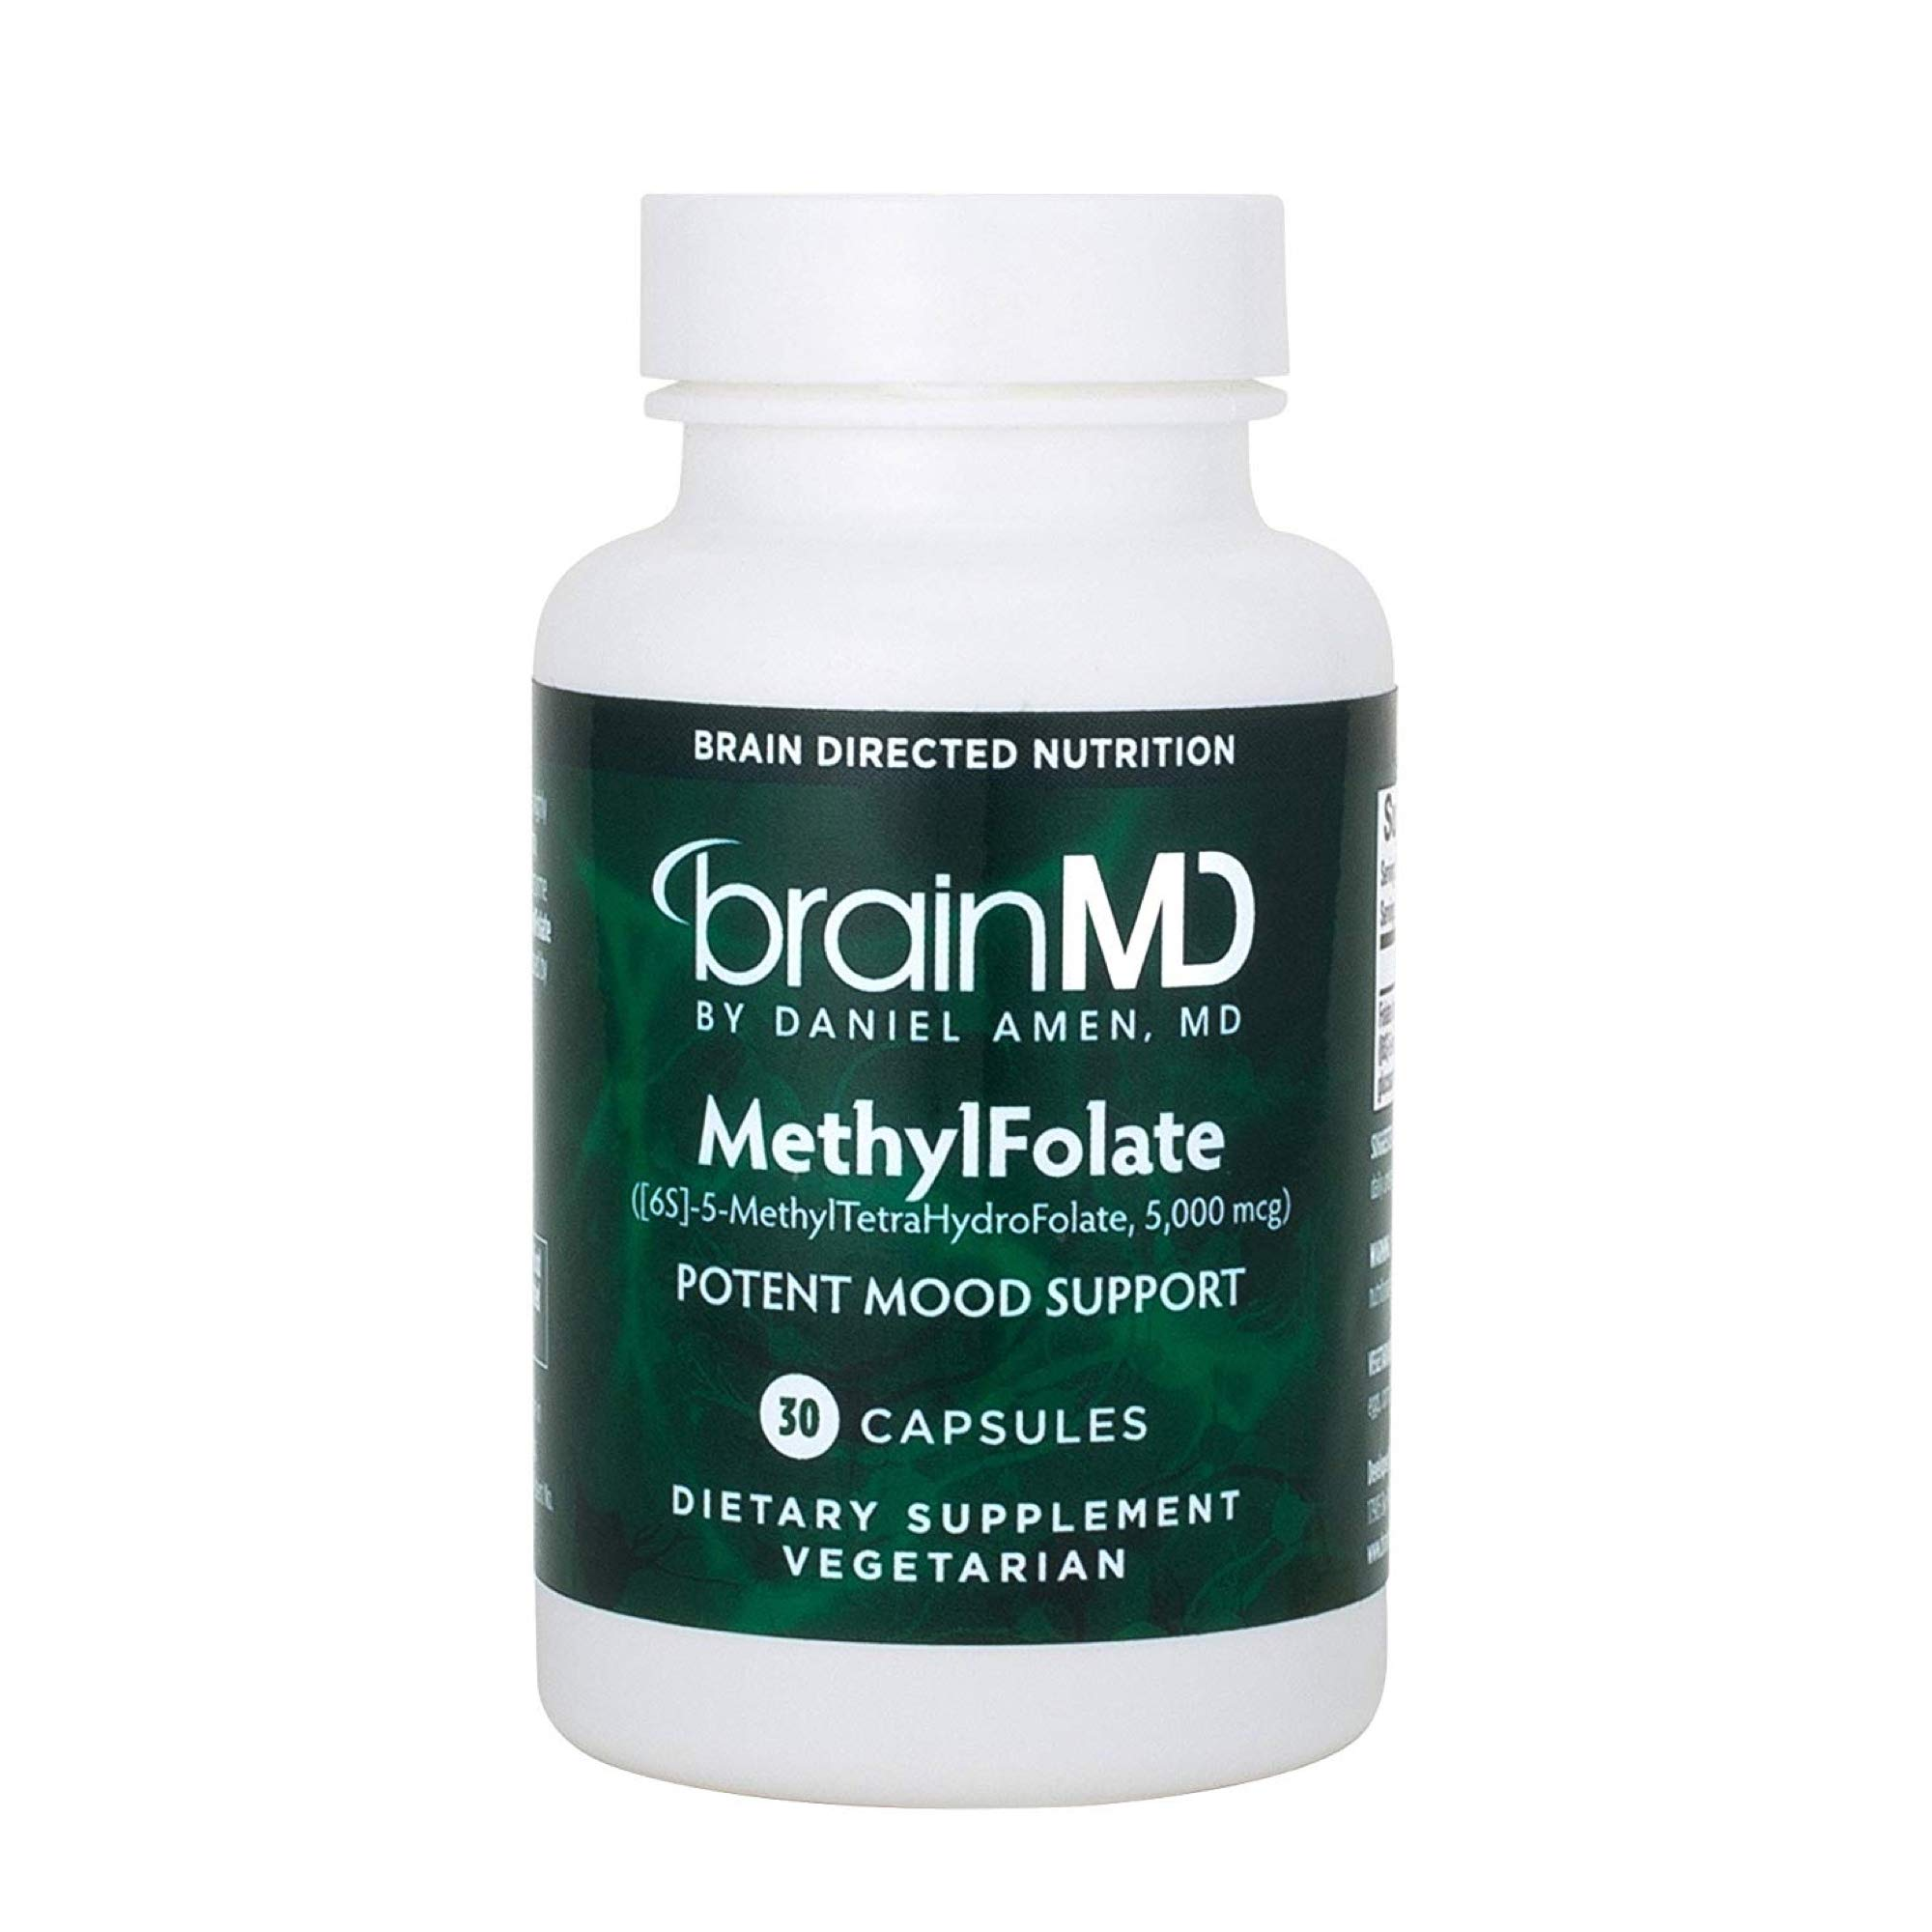 Dr. Amen brainMD MethylFolate - 5 mg Folate, 30 Capsules - Supports Mood & Heart Health, Promotes Cognition & Overall Wellbeing, Anti-Aging - Gluten-Free - 30 Servings